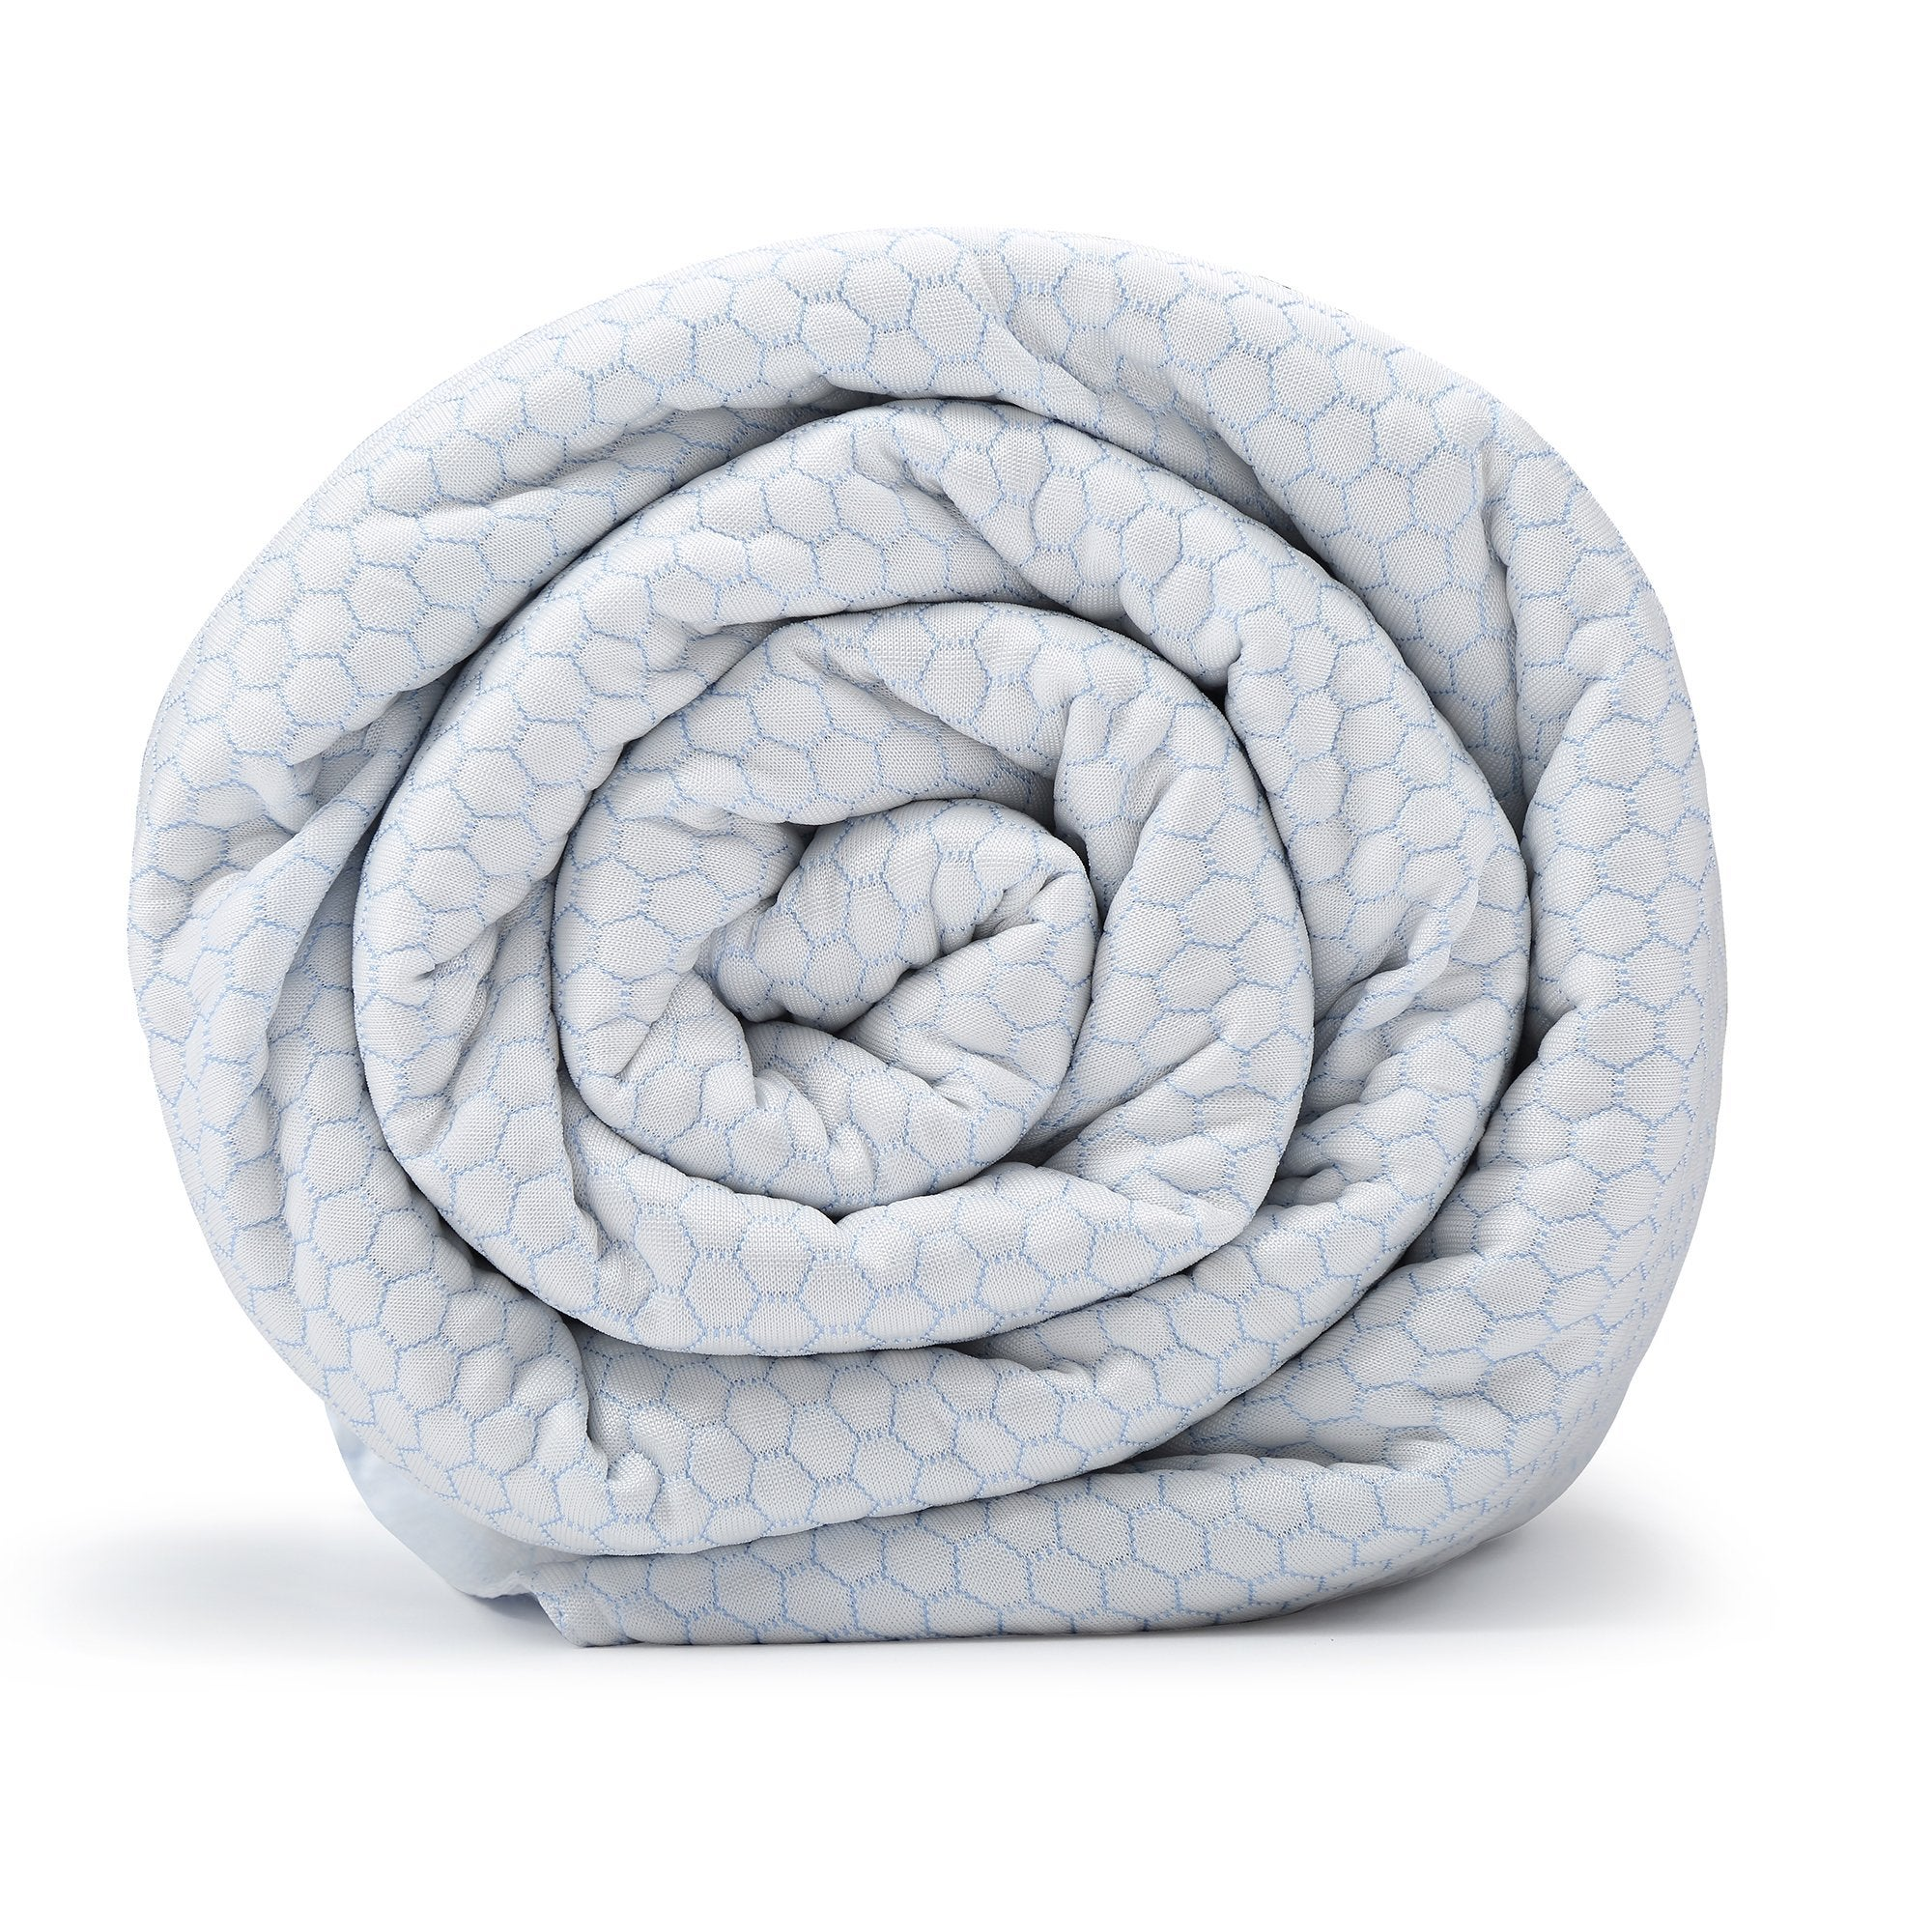 BLANQUIL CHILL – COOLING WEIGHTED BLANKET